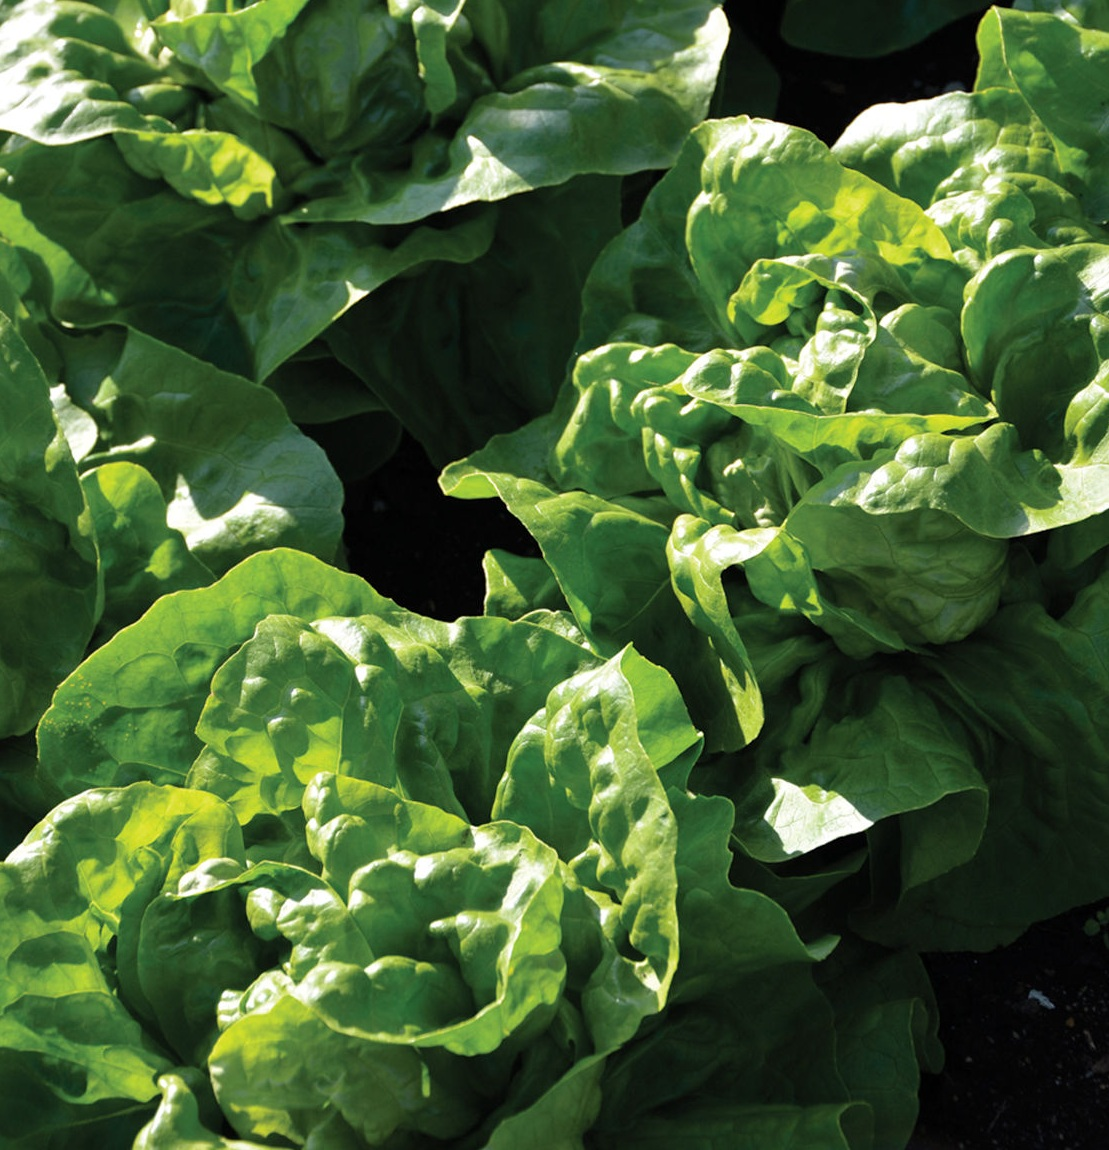 We'll be growing a great deal of Adriana, by Johnny's Selected Seeds. It's able to withstand summer heat - a major plus for us, especially since we're ramping up lettuce production. In past seasons, we've used loose leaf lettuce, but this year, we're converting to lettuce heads.